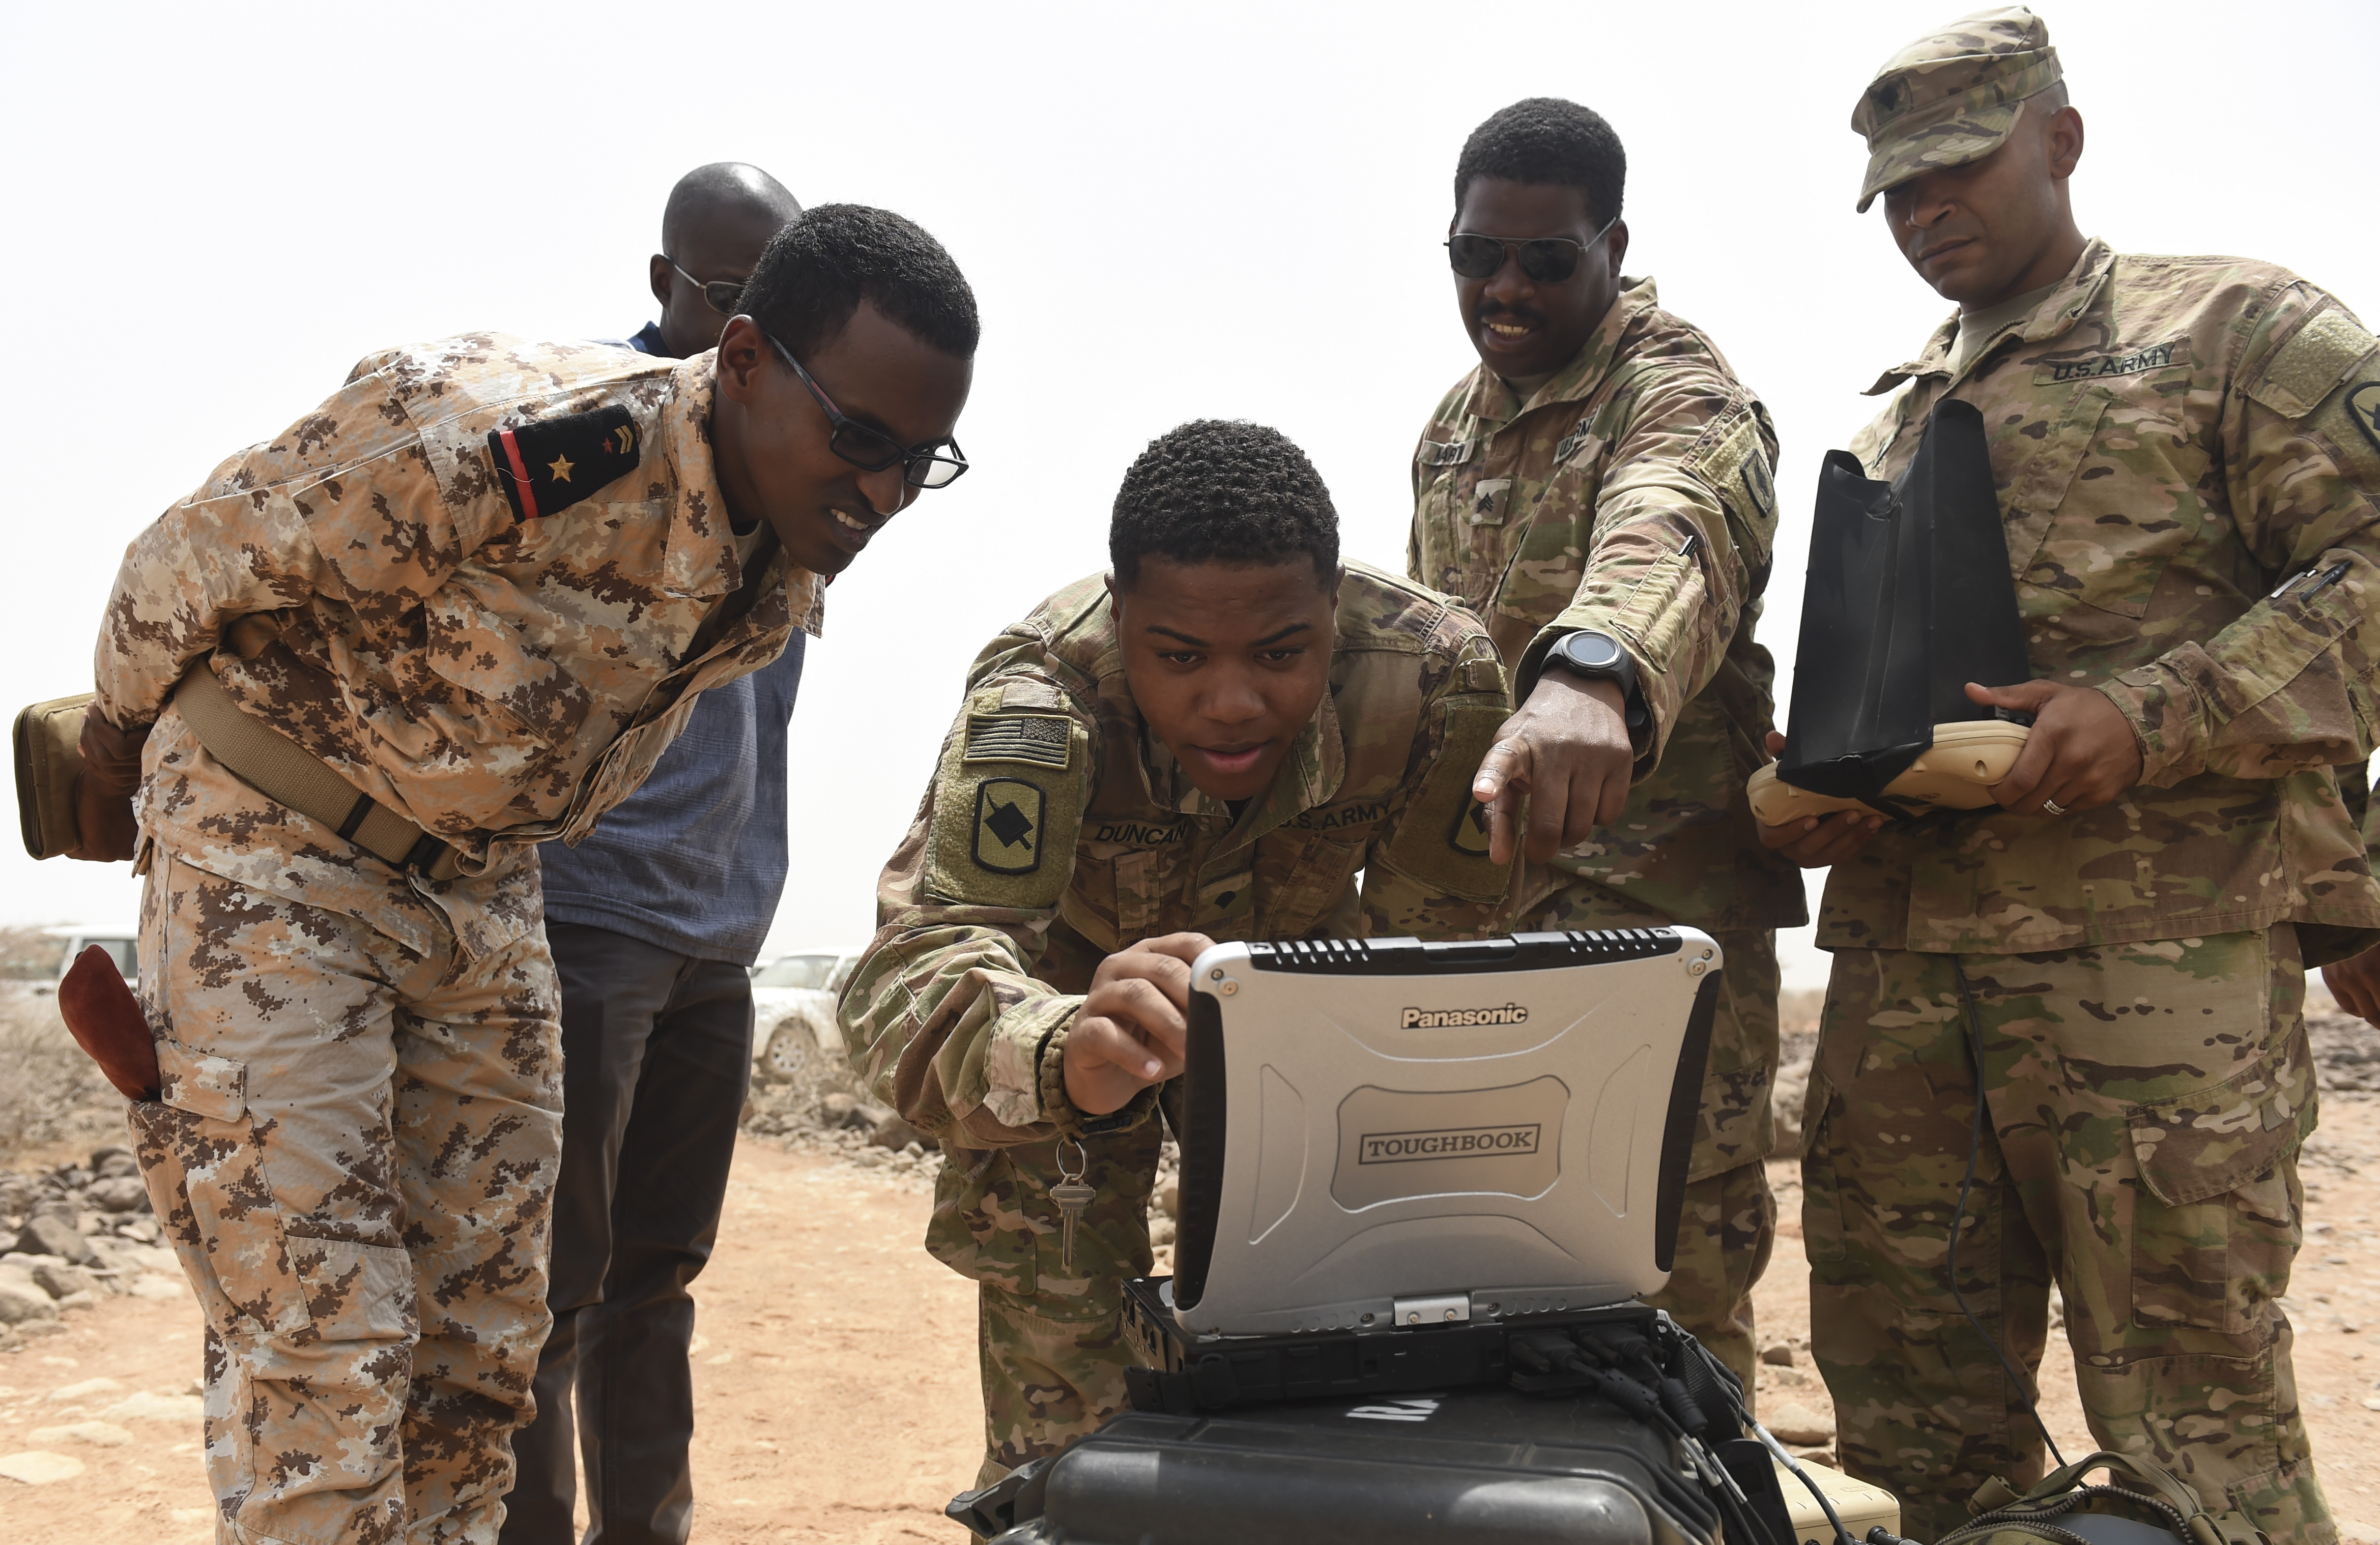 U.S. Army Soldiers assigned to the 1st Battalion, 153rd Infantry Regiment, Task Force Warrior, an associated unit of Combined Joint Task Force - Horn of Africa, demonstrate the use of a ground control station in an airfield in southern Djibouti, Aug. 21, 2017. The demonstration was given in an effort to help the Djibouti Armed Forces determine if the RQ-11 Raven remotely piloted aircraft might benefit FAD operations that maintain stability and security in and around Djibouti. (U.S. Air Force photo by Staff Sgt. Eboni Prince)